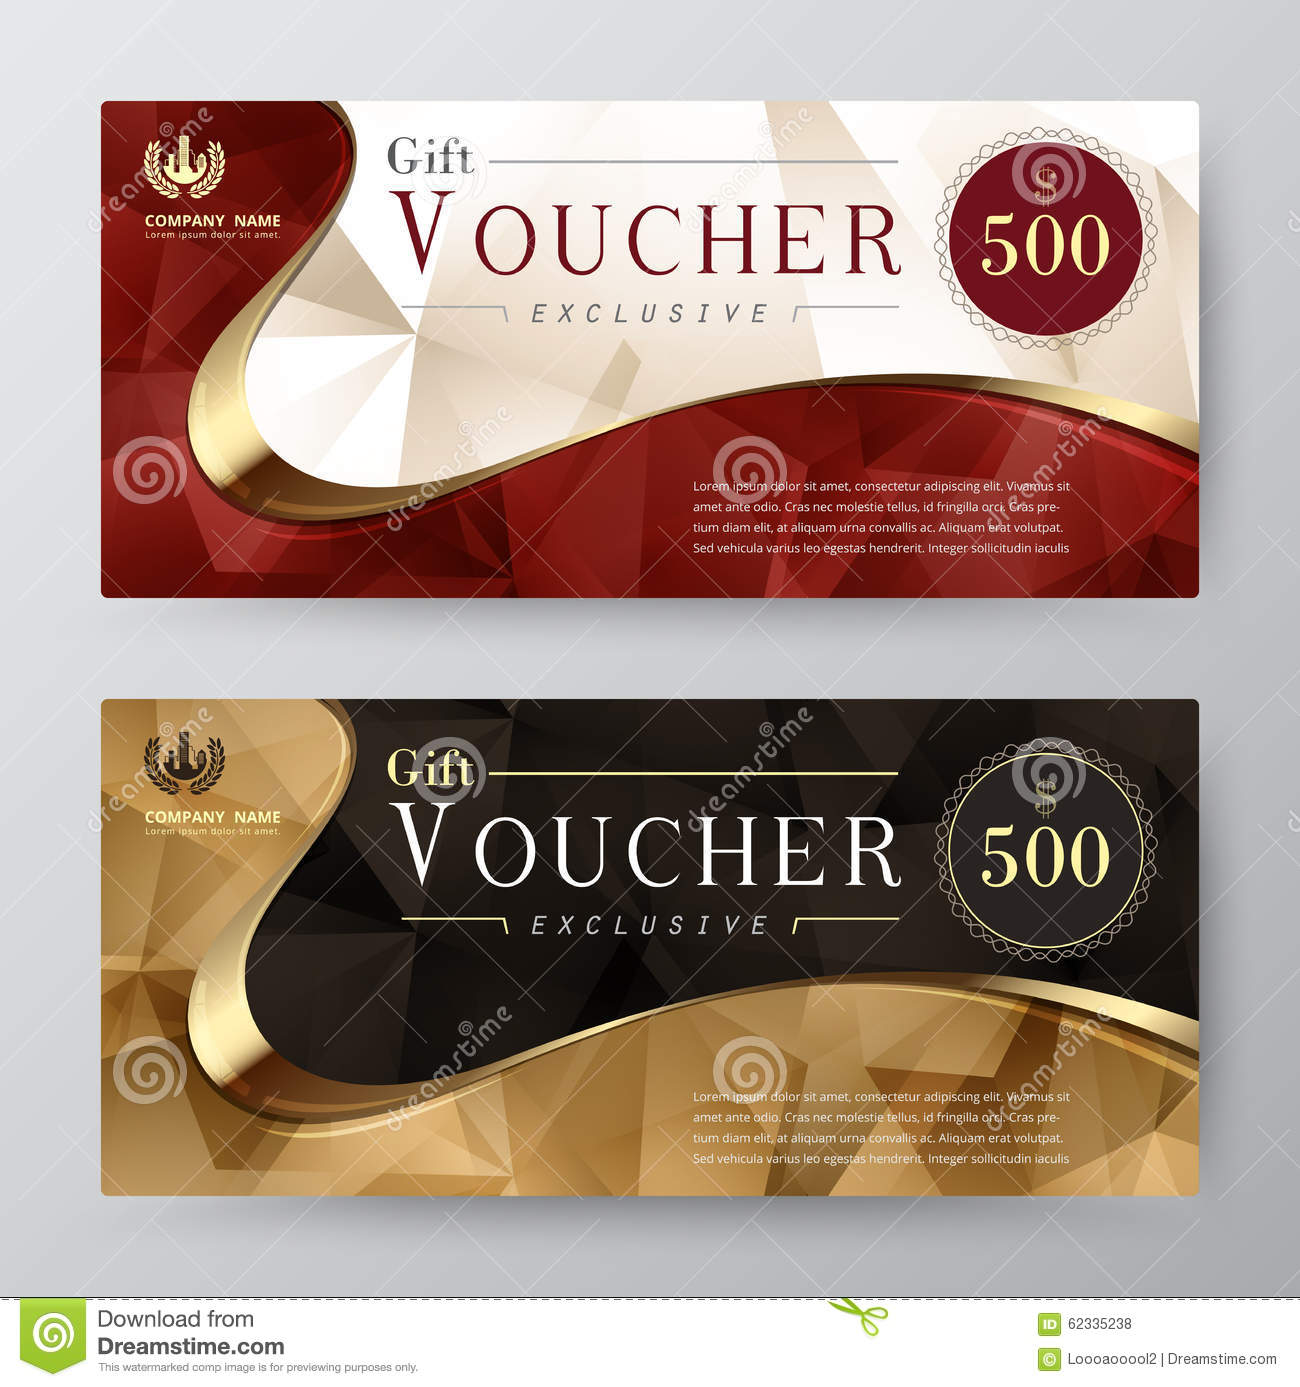 Gift Voucher Template. Promotion Card, Coupon Design. Exclusive, Bank.  Coupons Design Templates